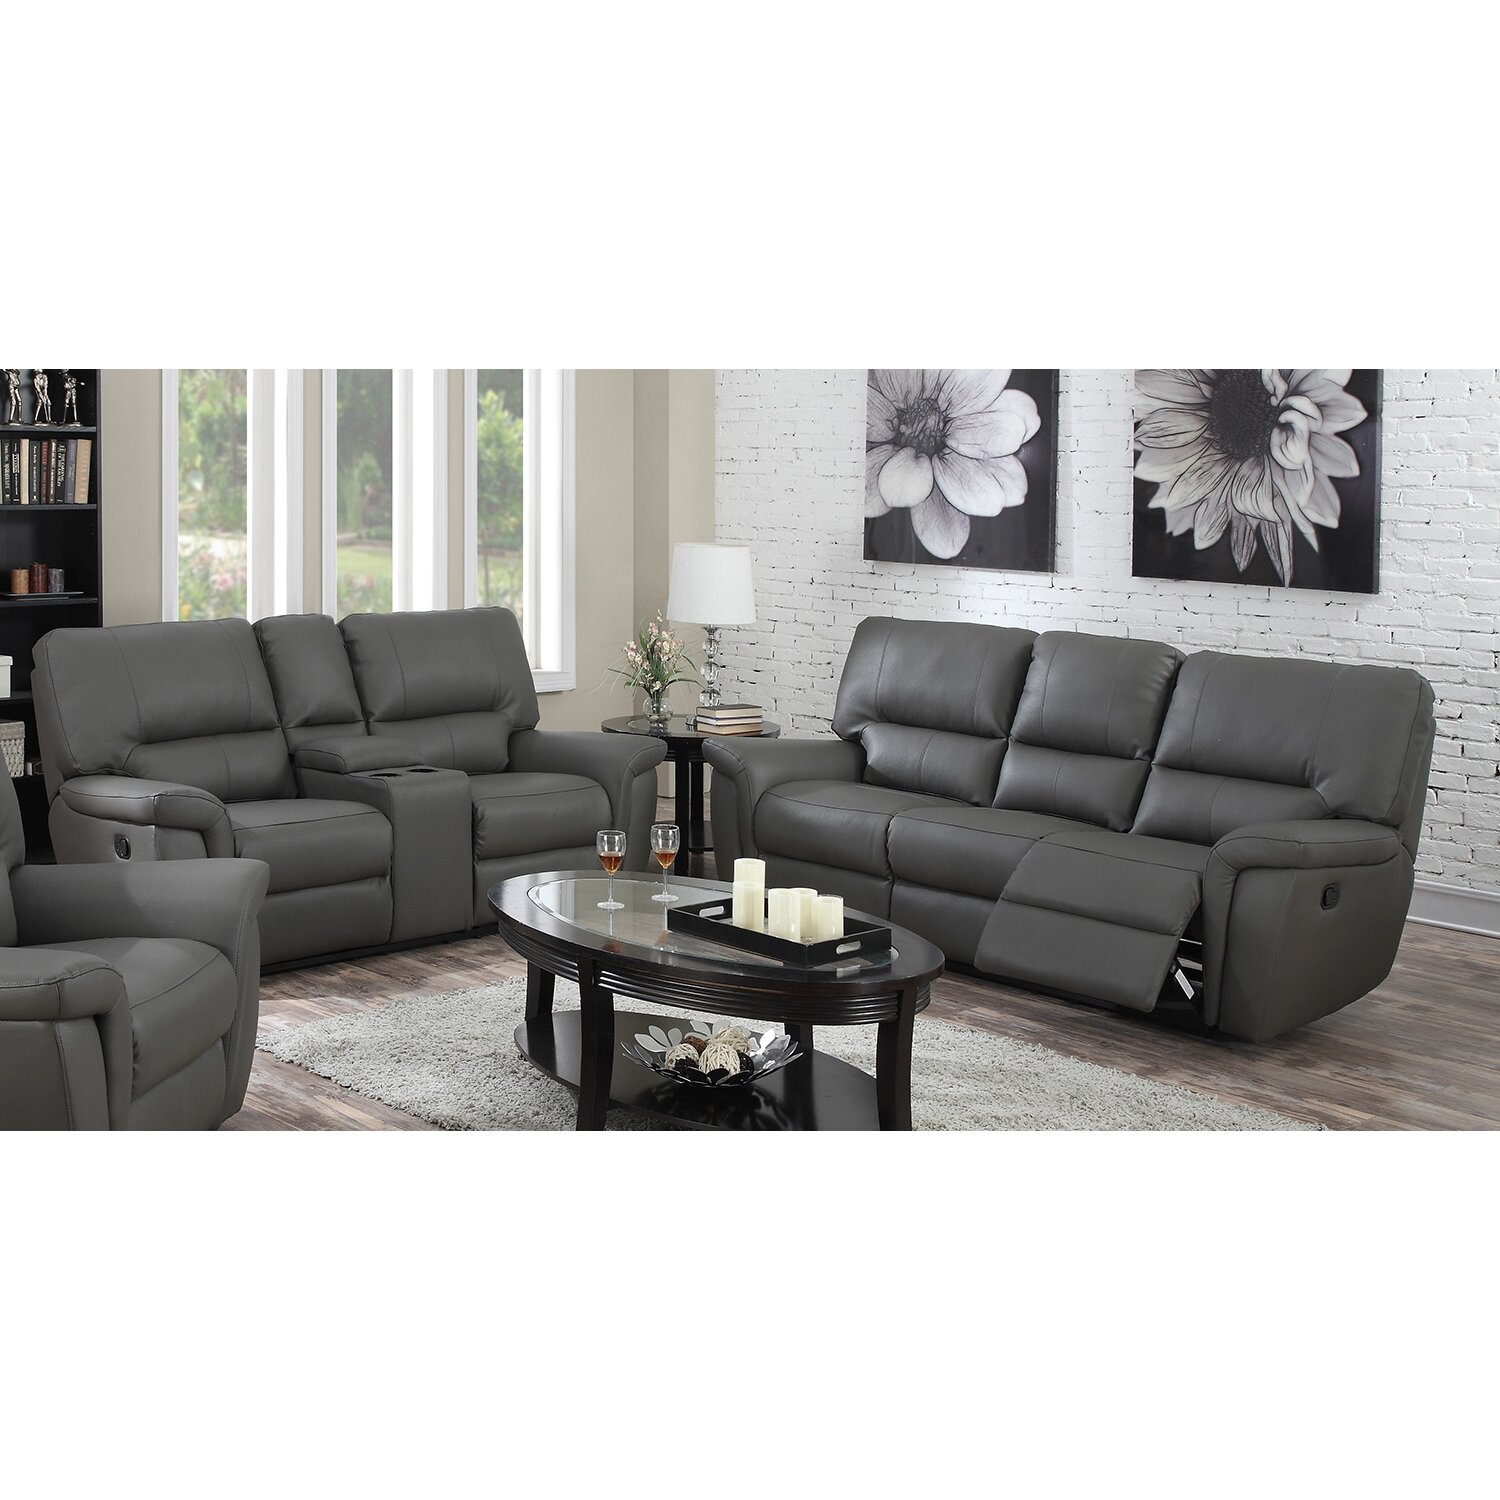 Sofa And Loveseat Recliner Sets Brown Reclining Sofa Loveseat And Rocker Recliner Walnut